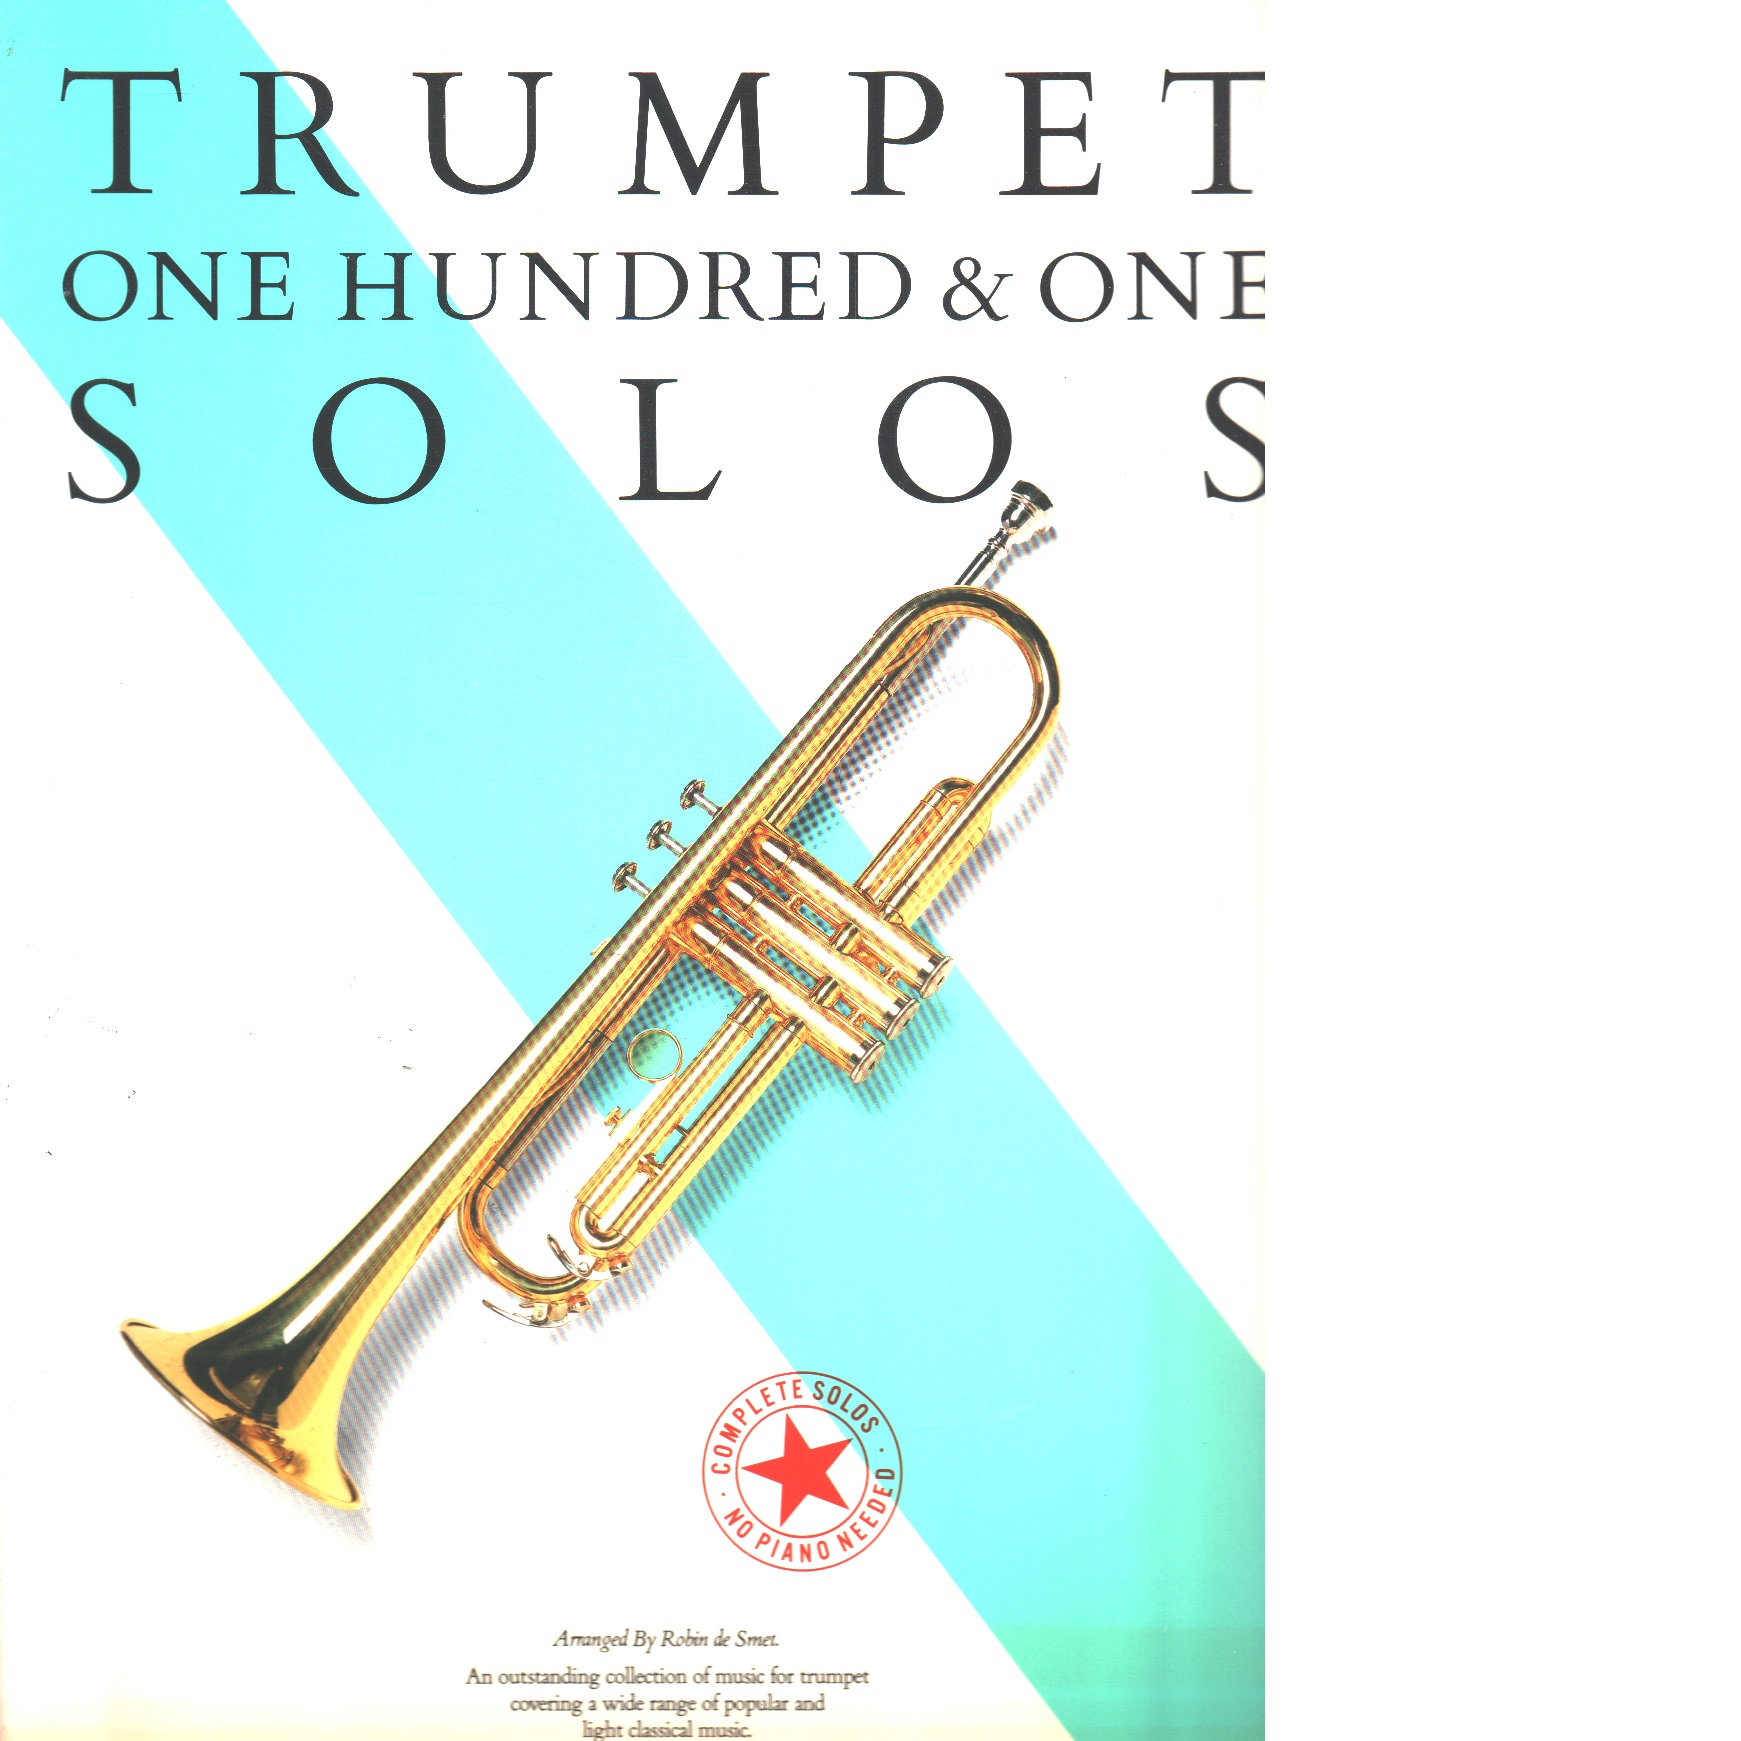 One hundred and one solos for the trumpet - Red.